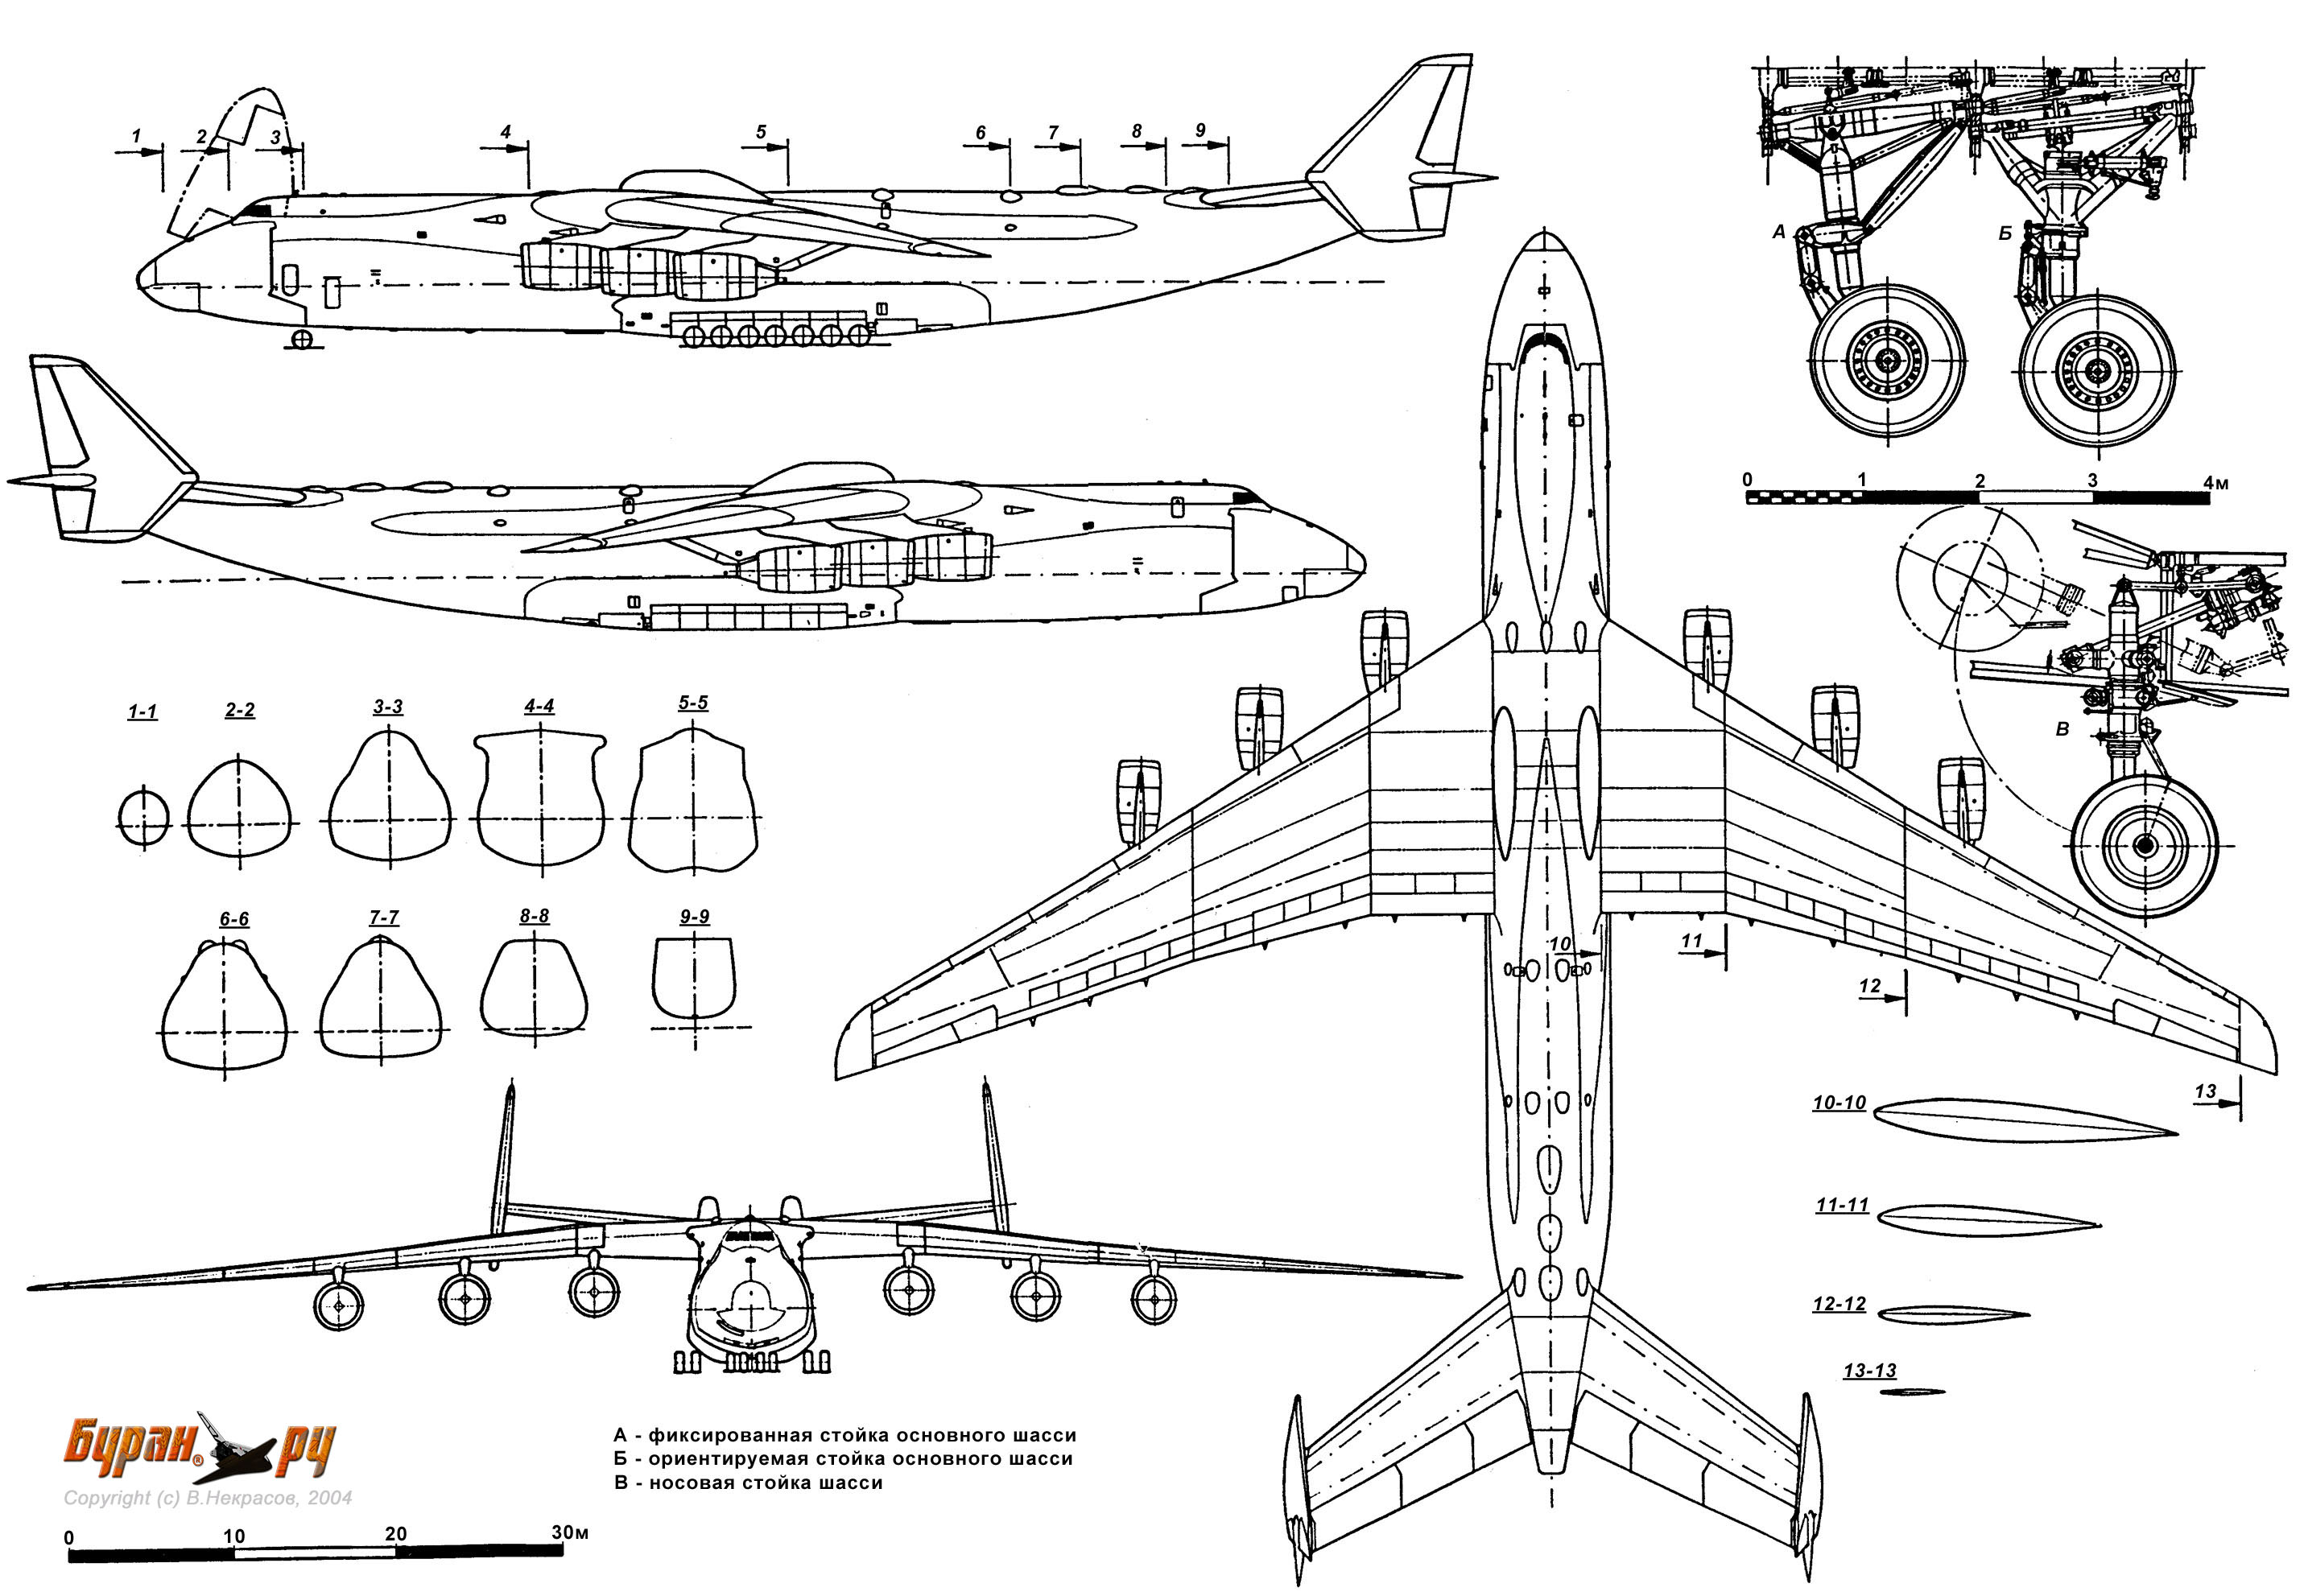 aircraft schematics